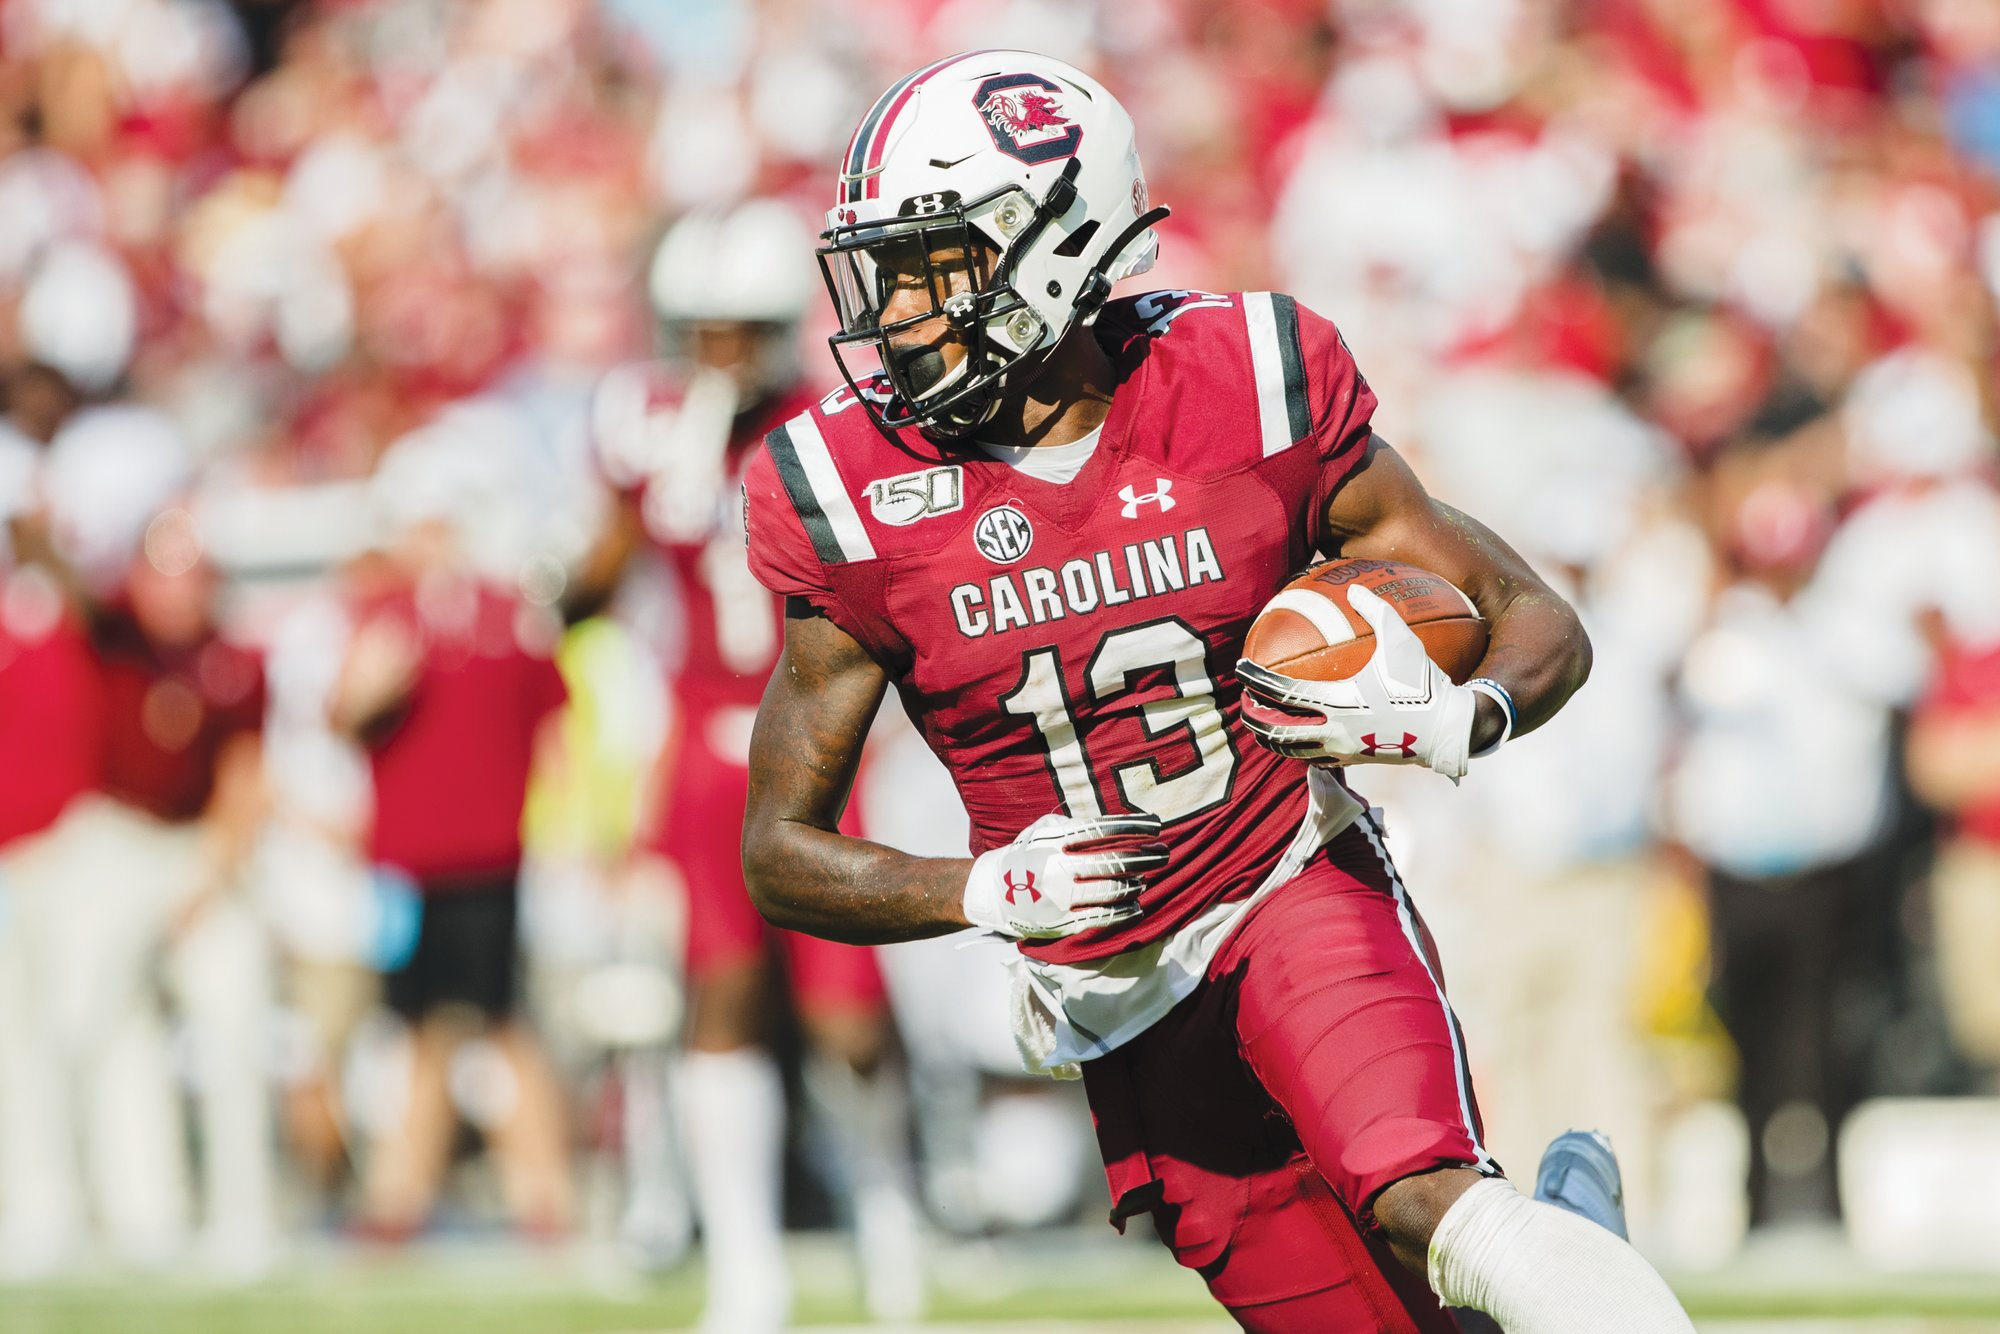 MICAH GREEN / THE SUMTER ITEM  South Carolina wide receiver Shi Smith and his Gamecock teammates are looking to get back on track when they play host to Kentucky in an SEC matchup on Saturday at Williams-Brice Stadium.